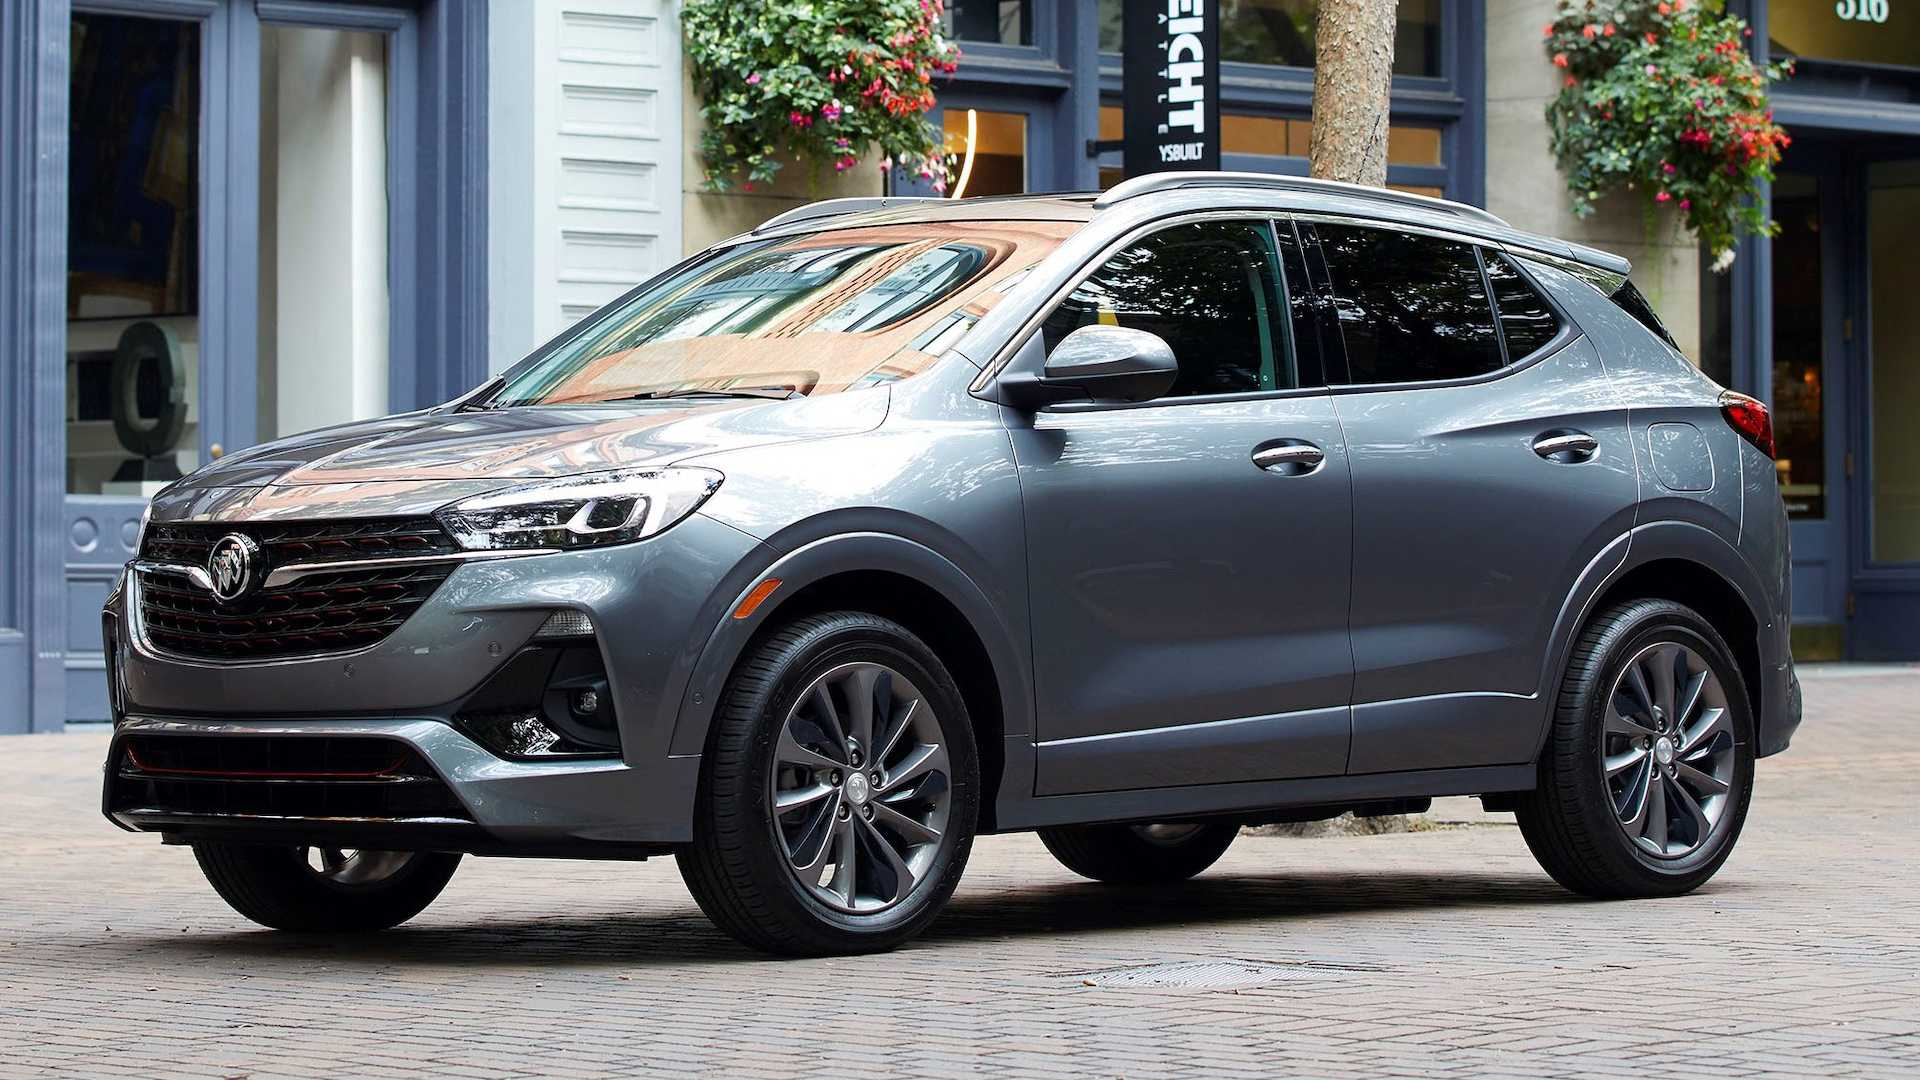 2021 Buick Encore Gx Details Emerge: Styling Tweaks, More Tech 2022 Buick Encore Gx Review, Dimensions, Price